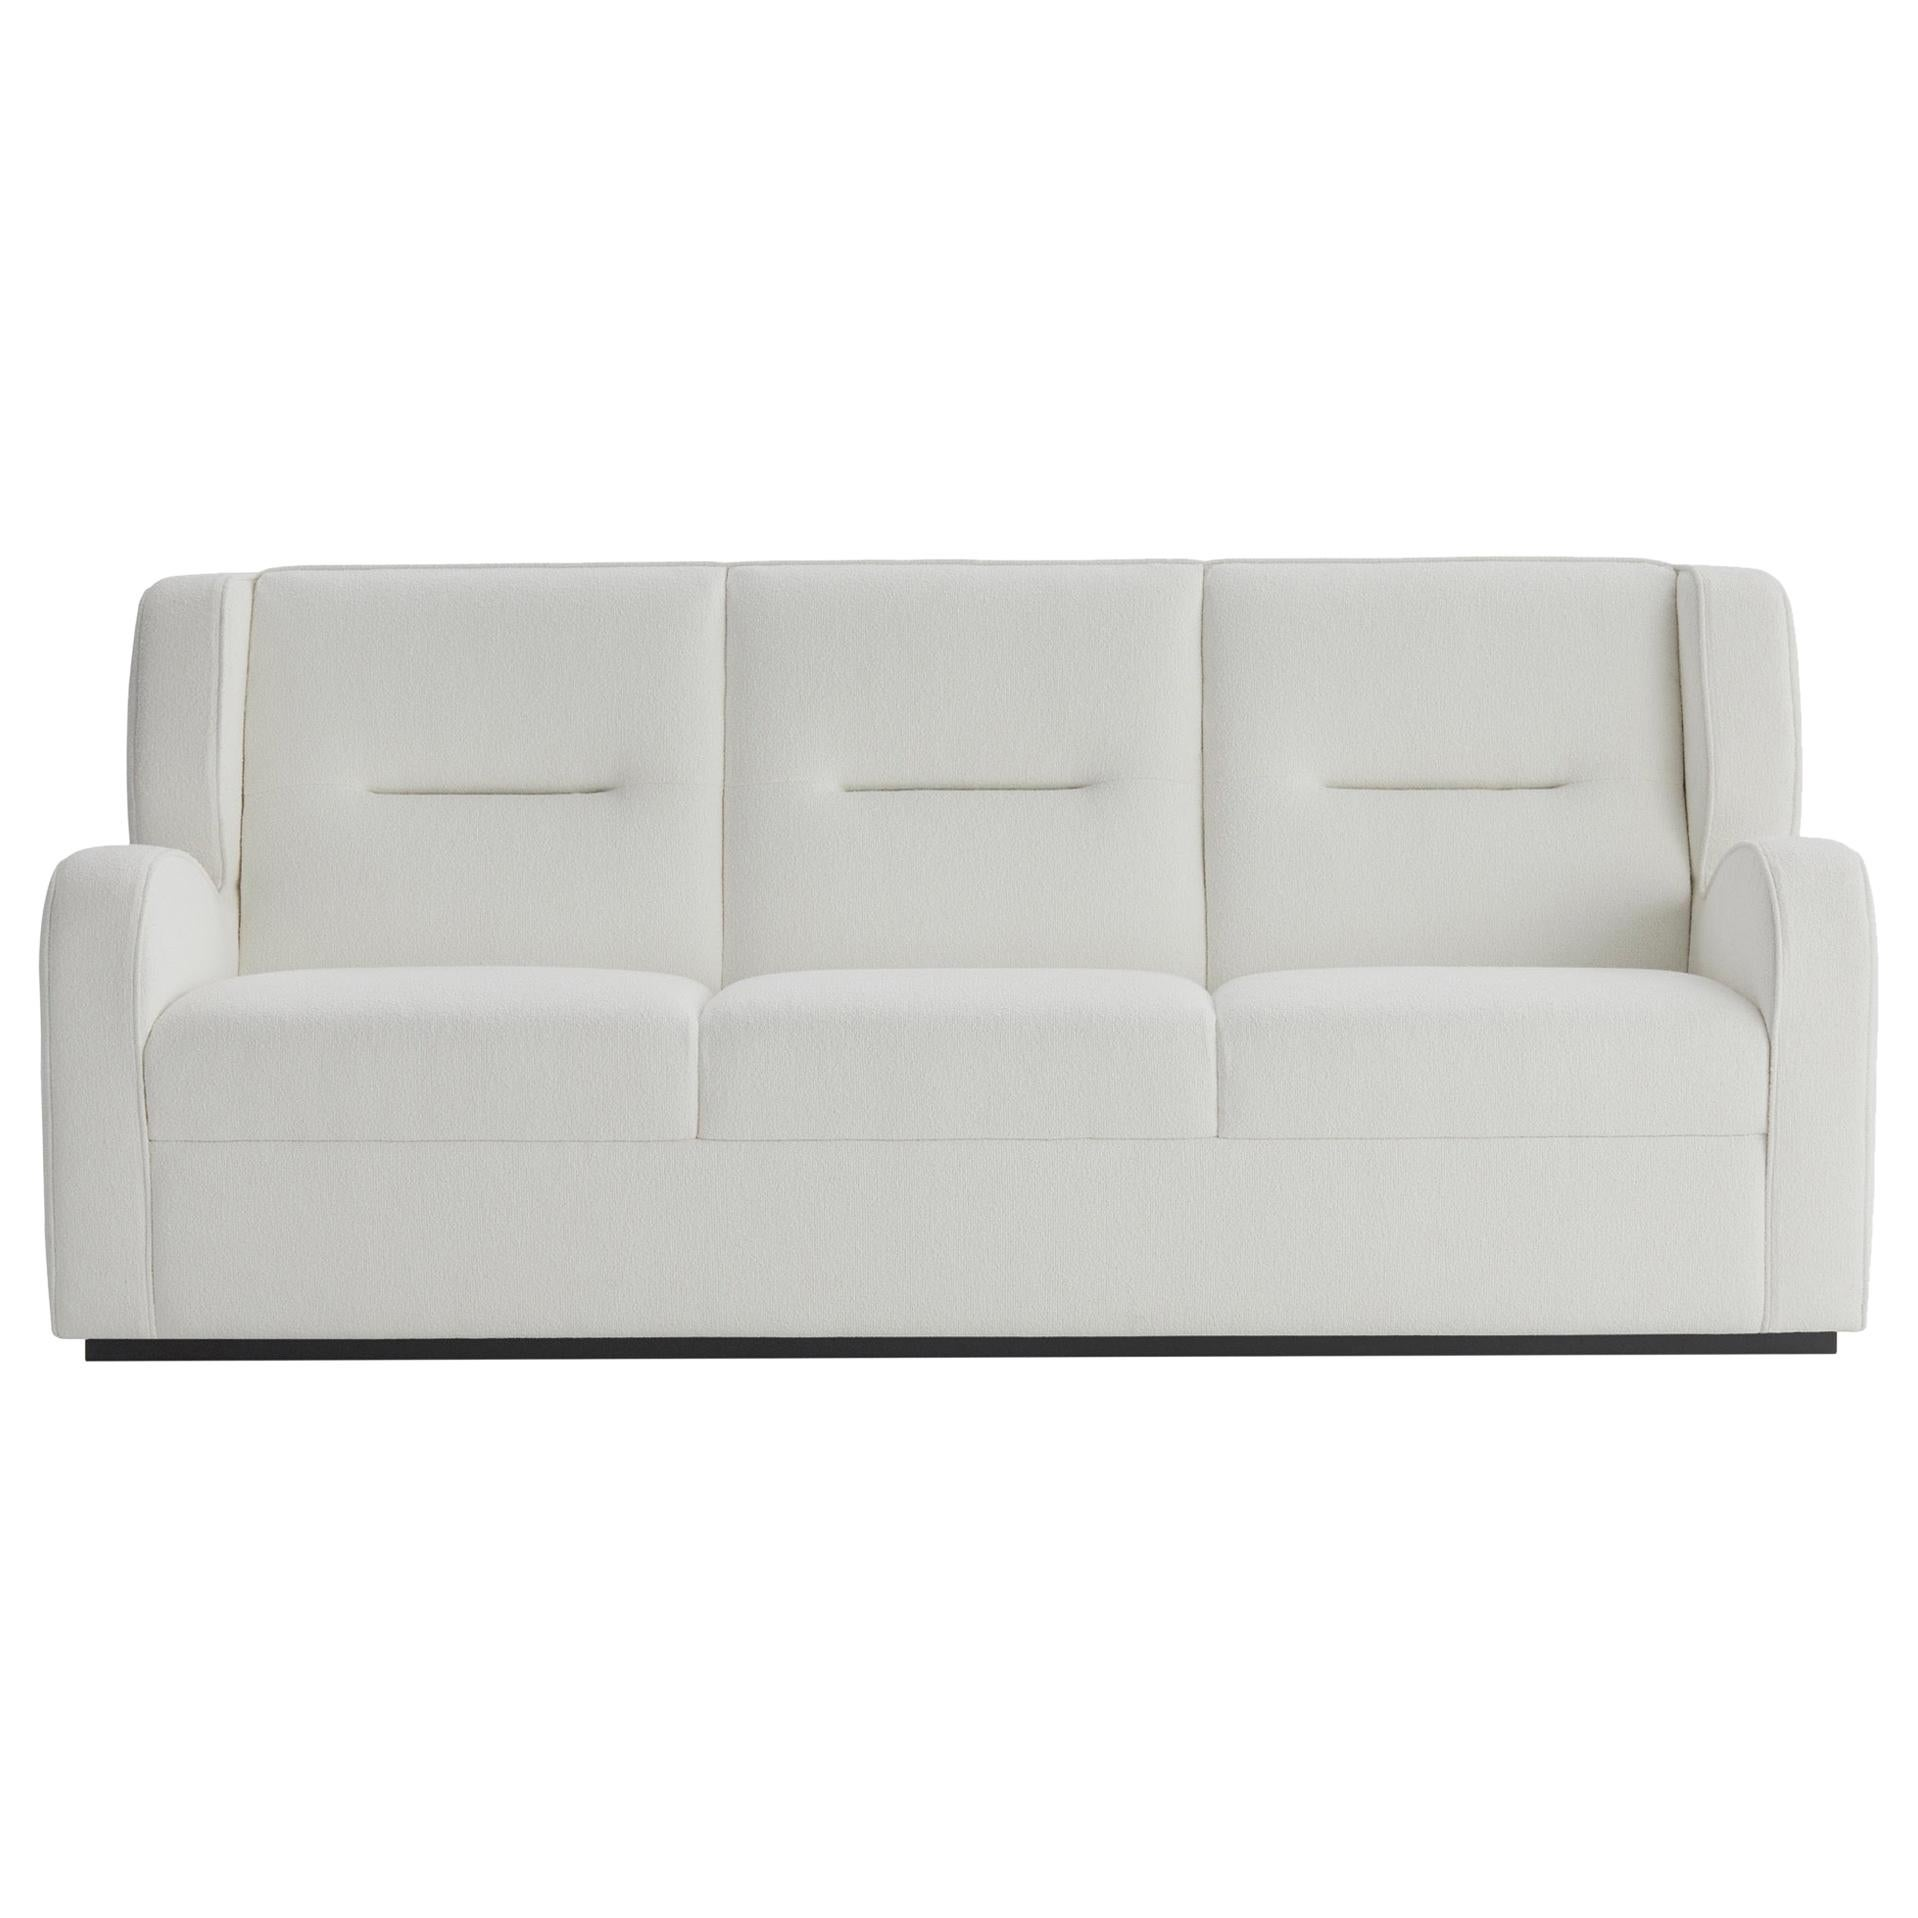 O'neill 3-Seat Sofa in White with Black Lacquer Plinth